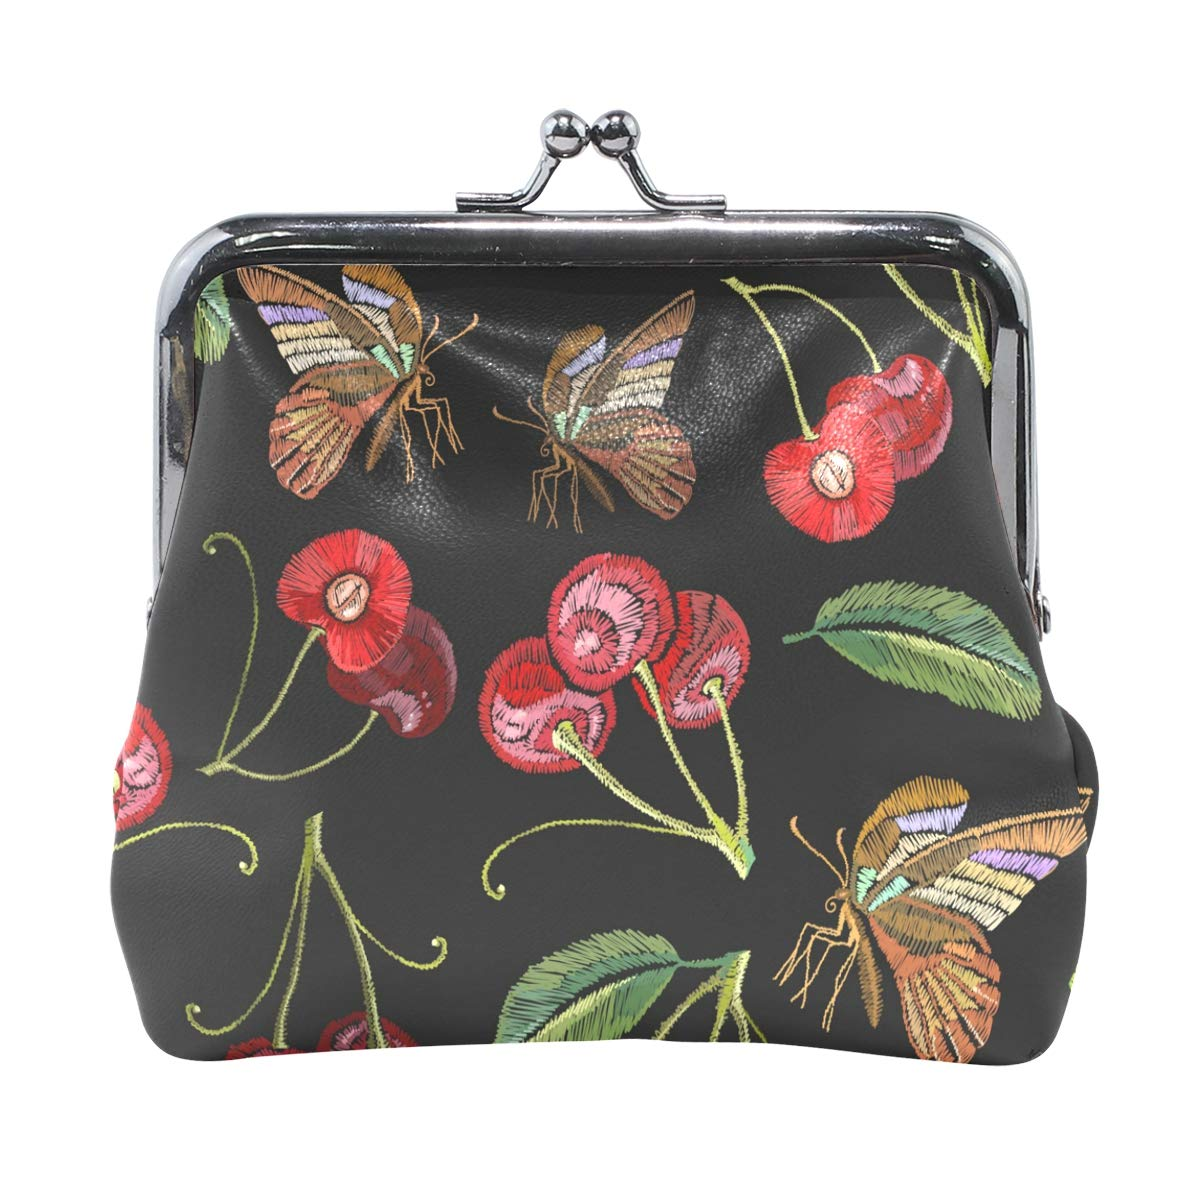 Fashion Womens Coin Purse Cherry Insect Patterns Vintage Pouch Mini Purse Wallets